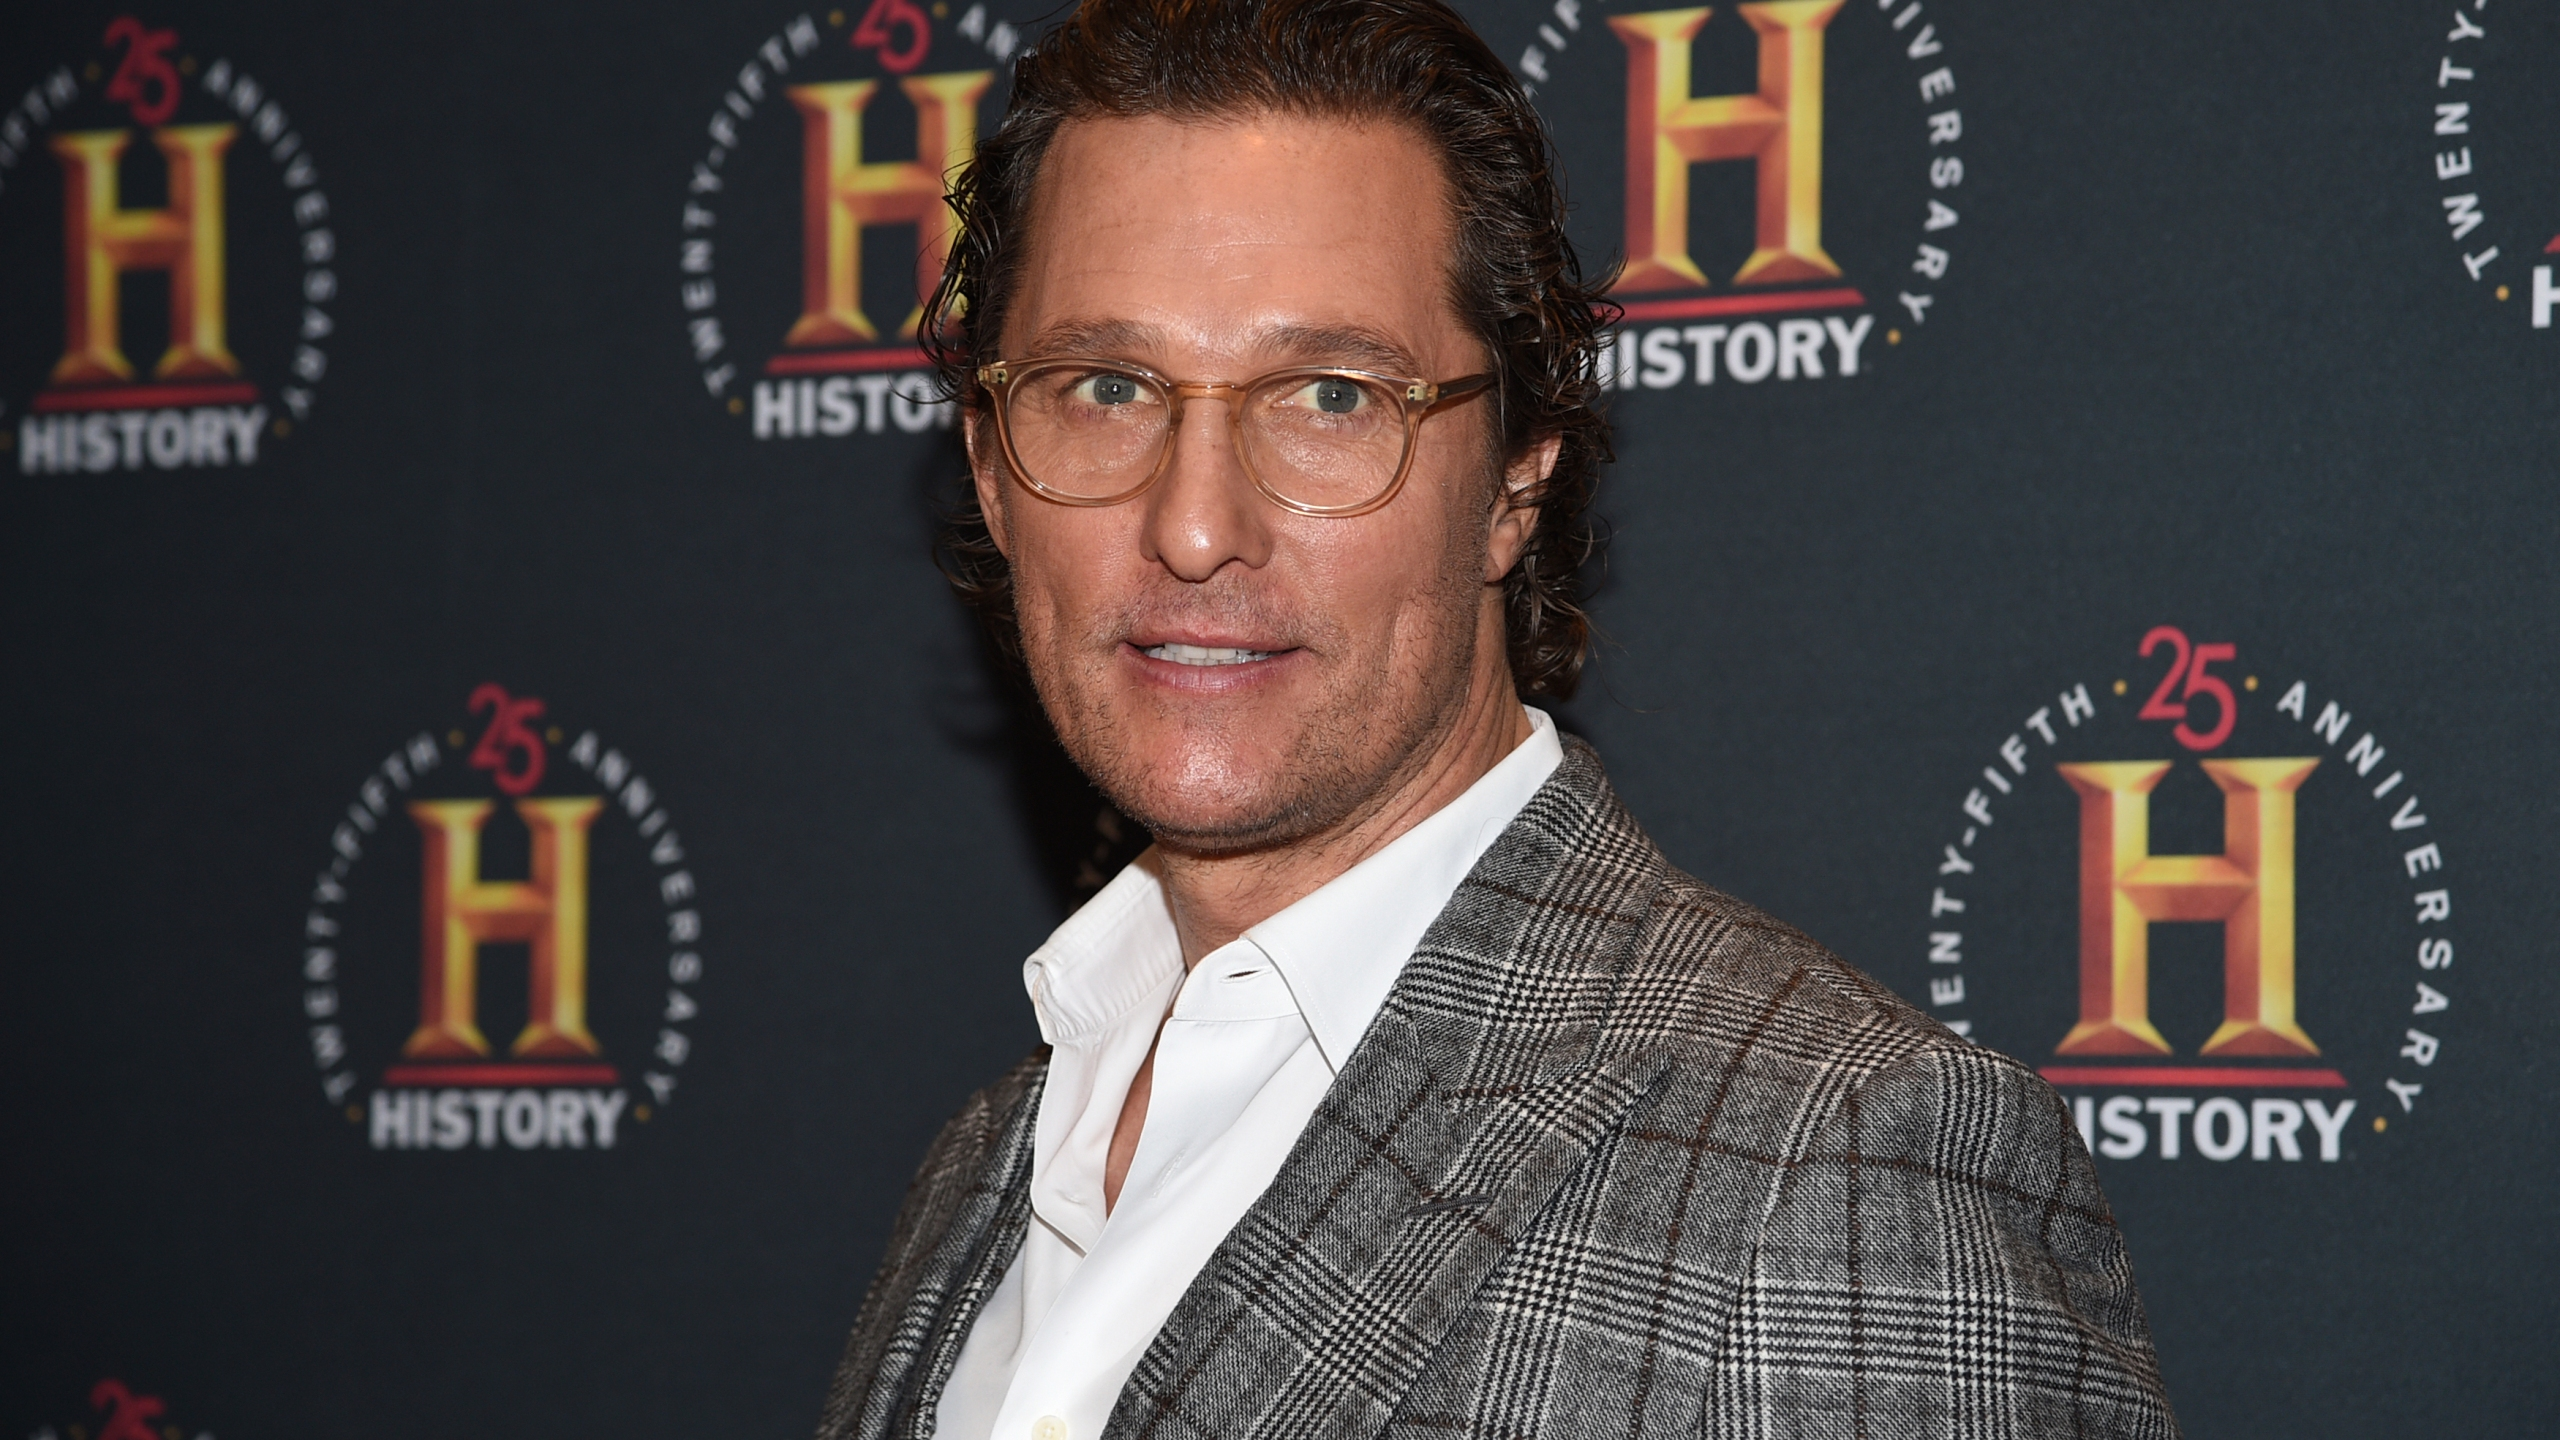 Matthew McConaughey to release book later this year | KXAN ...